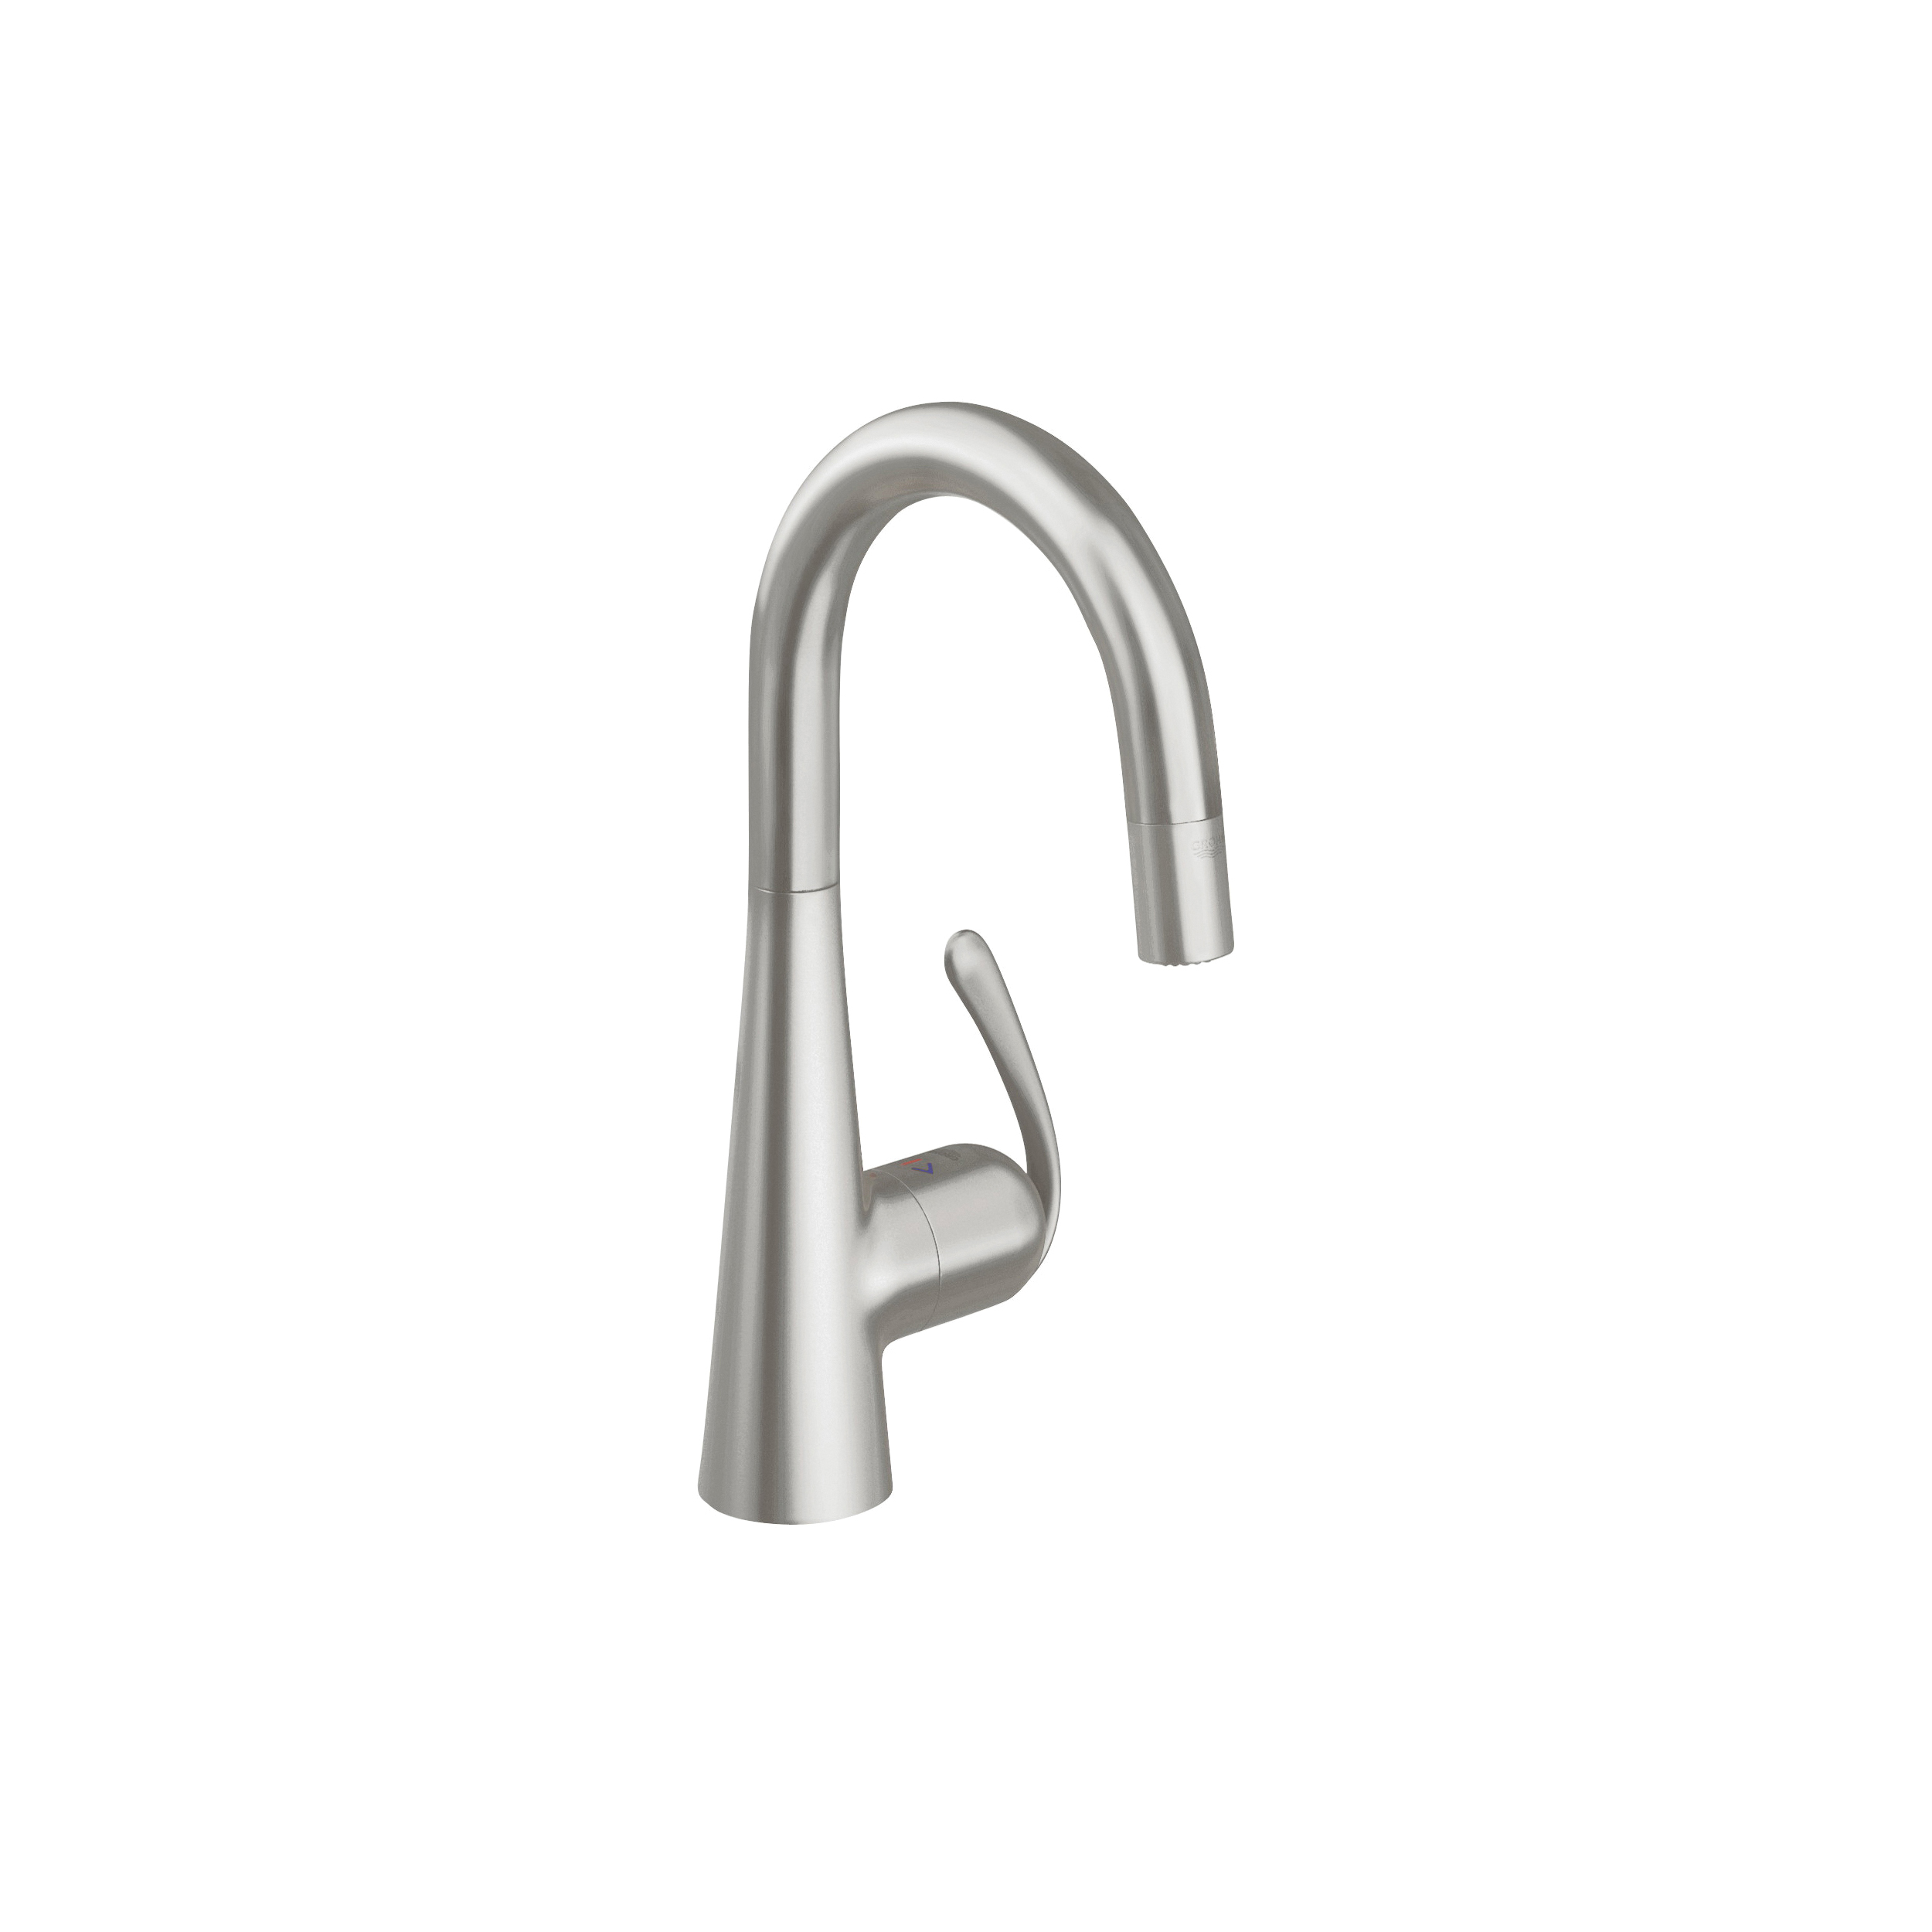 GROHE 32283DC0 Ladylux3 Pro Sink Mixer, 1.75 gpm, 1 Handle, SuperSteel, Import